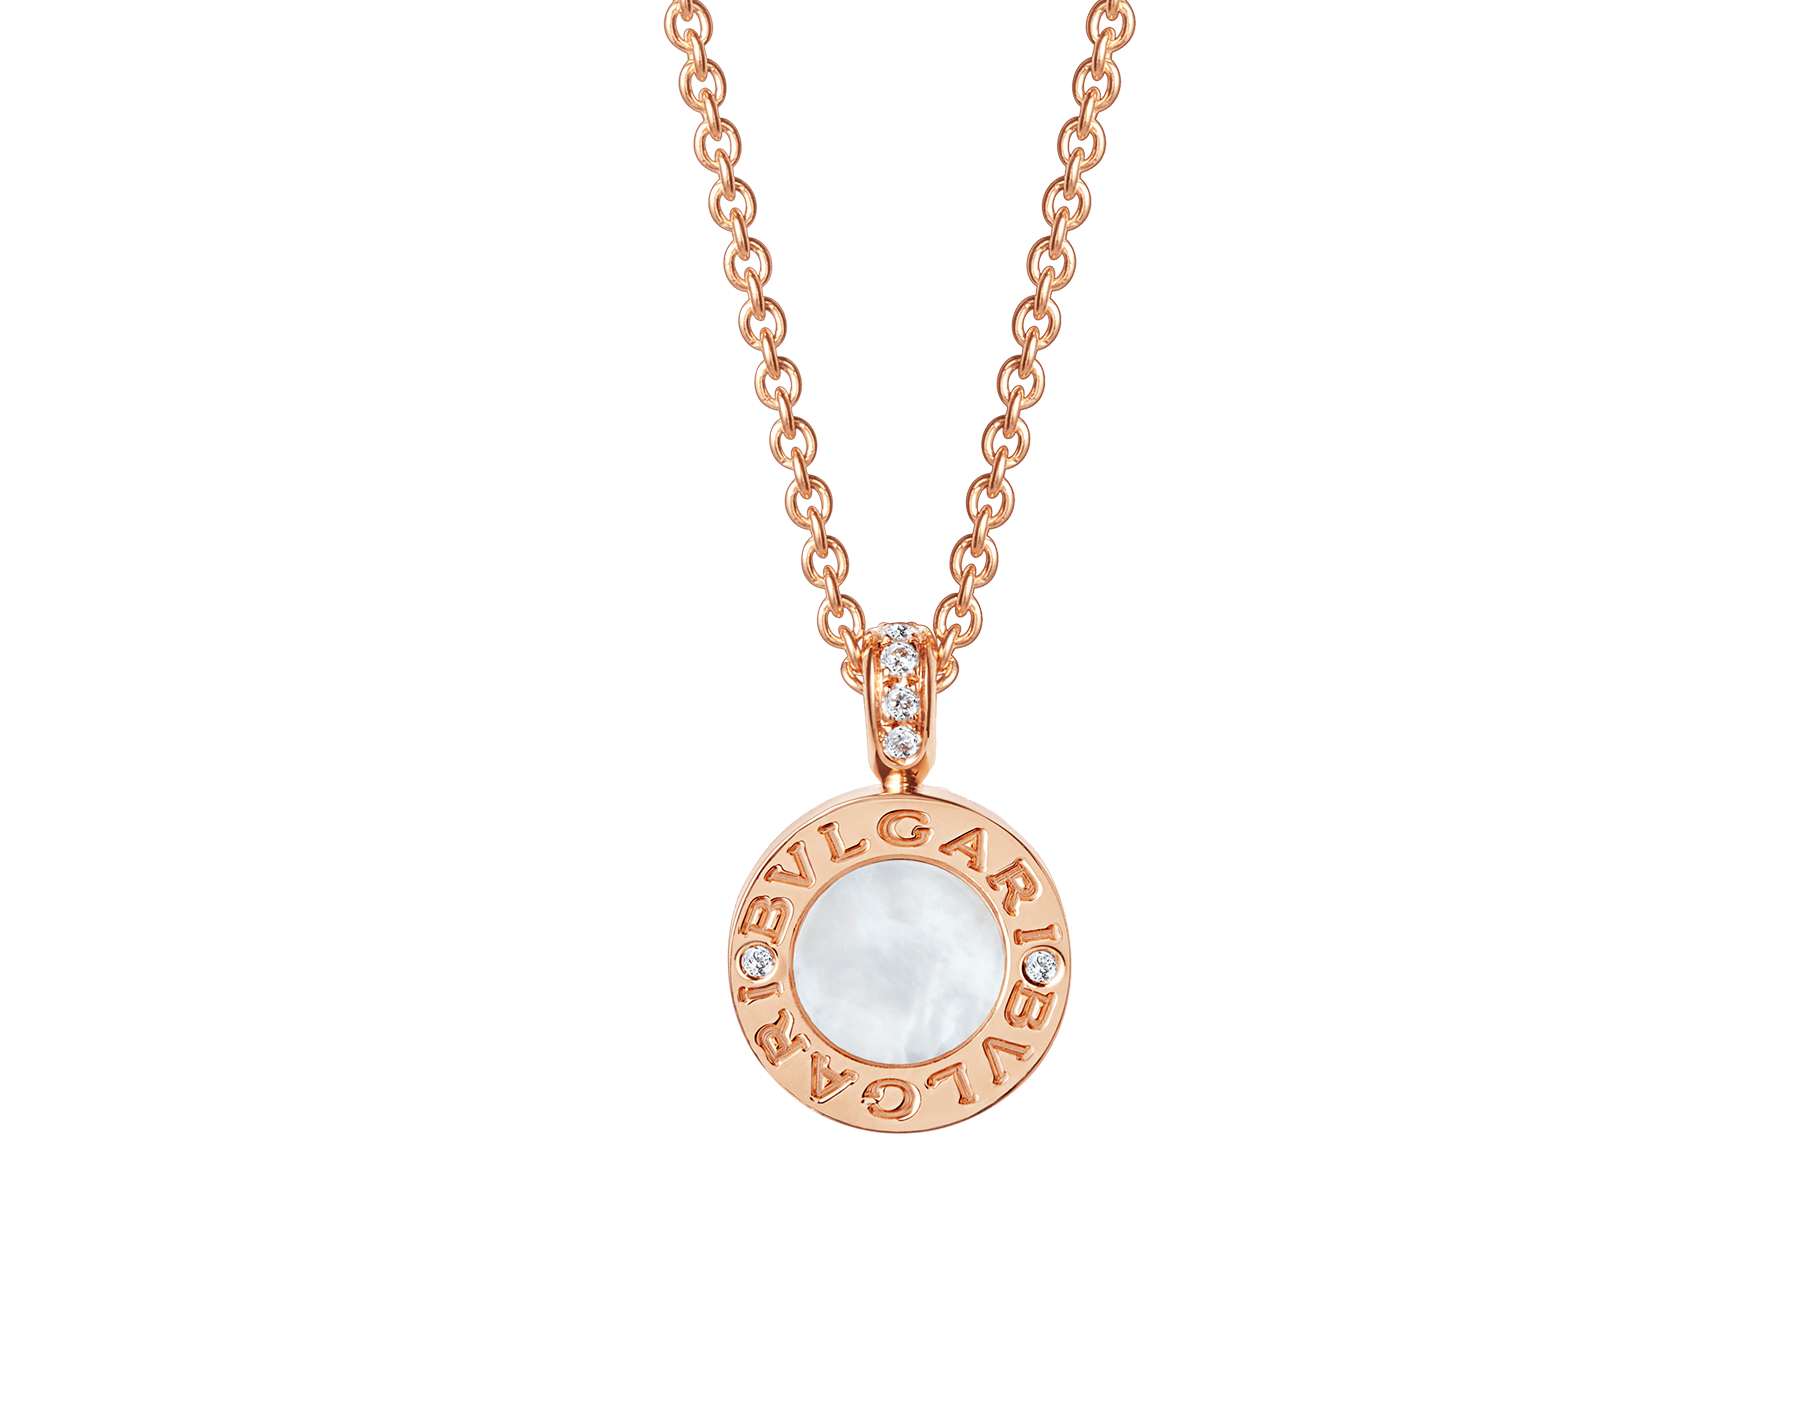 BVLGARI BVLGARI 18 kt rose gold chain and 18 kt rose gold pendant set with mother-of-pearl, onyx and pavé diamonds 347761 image 1